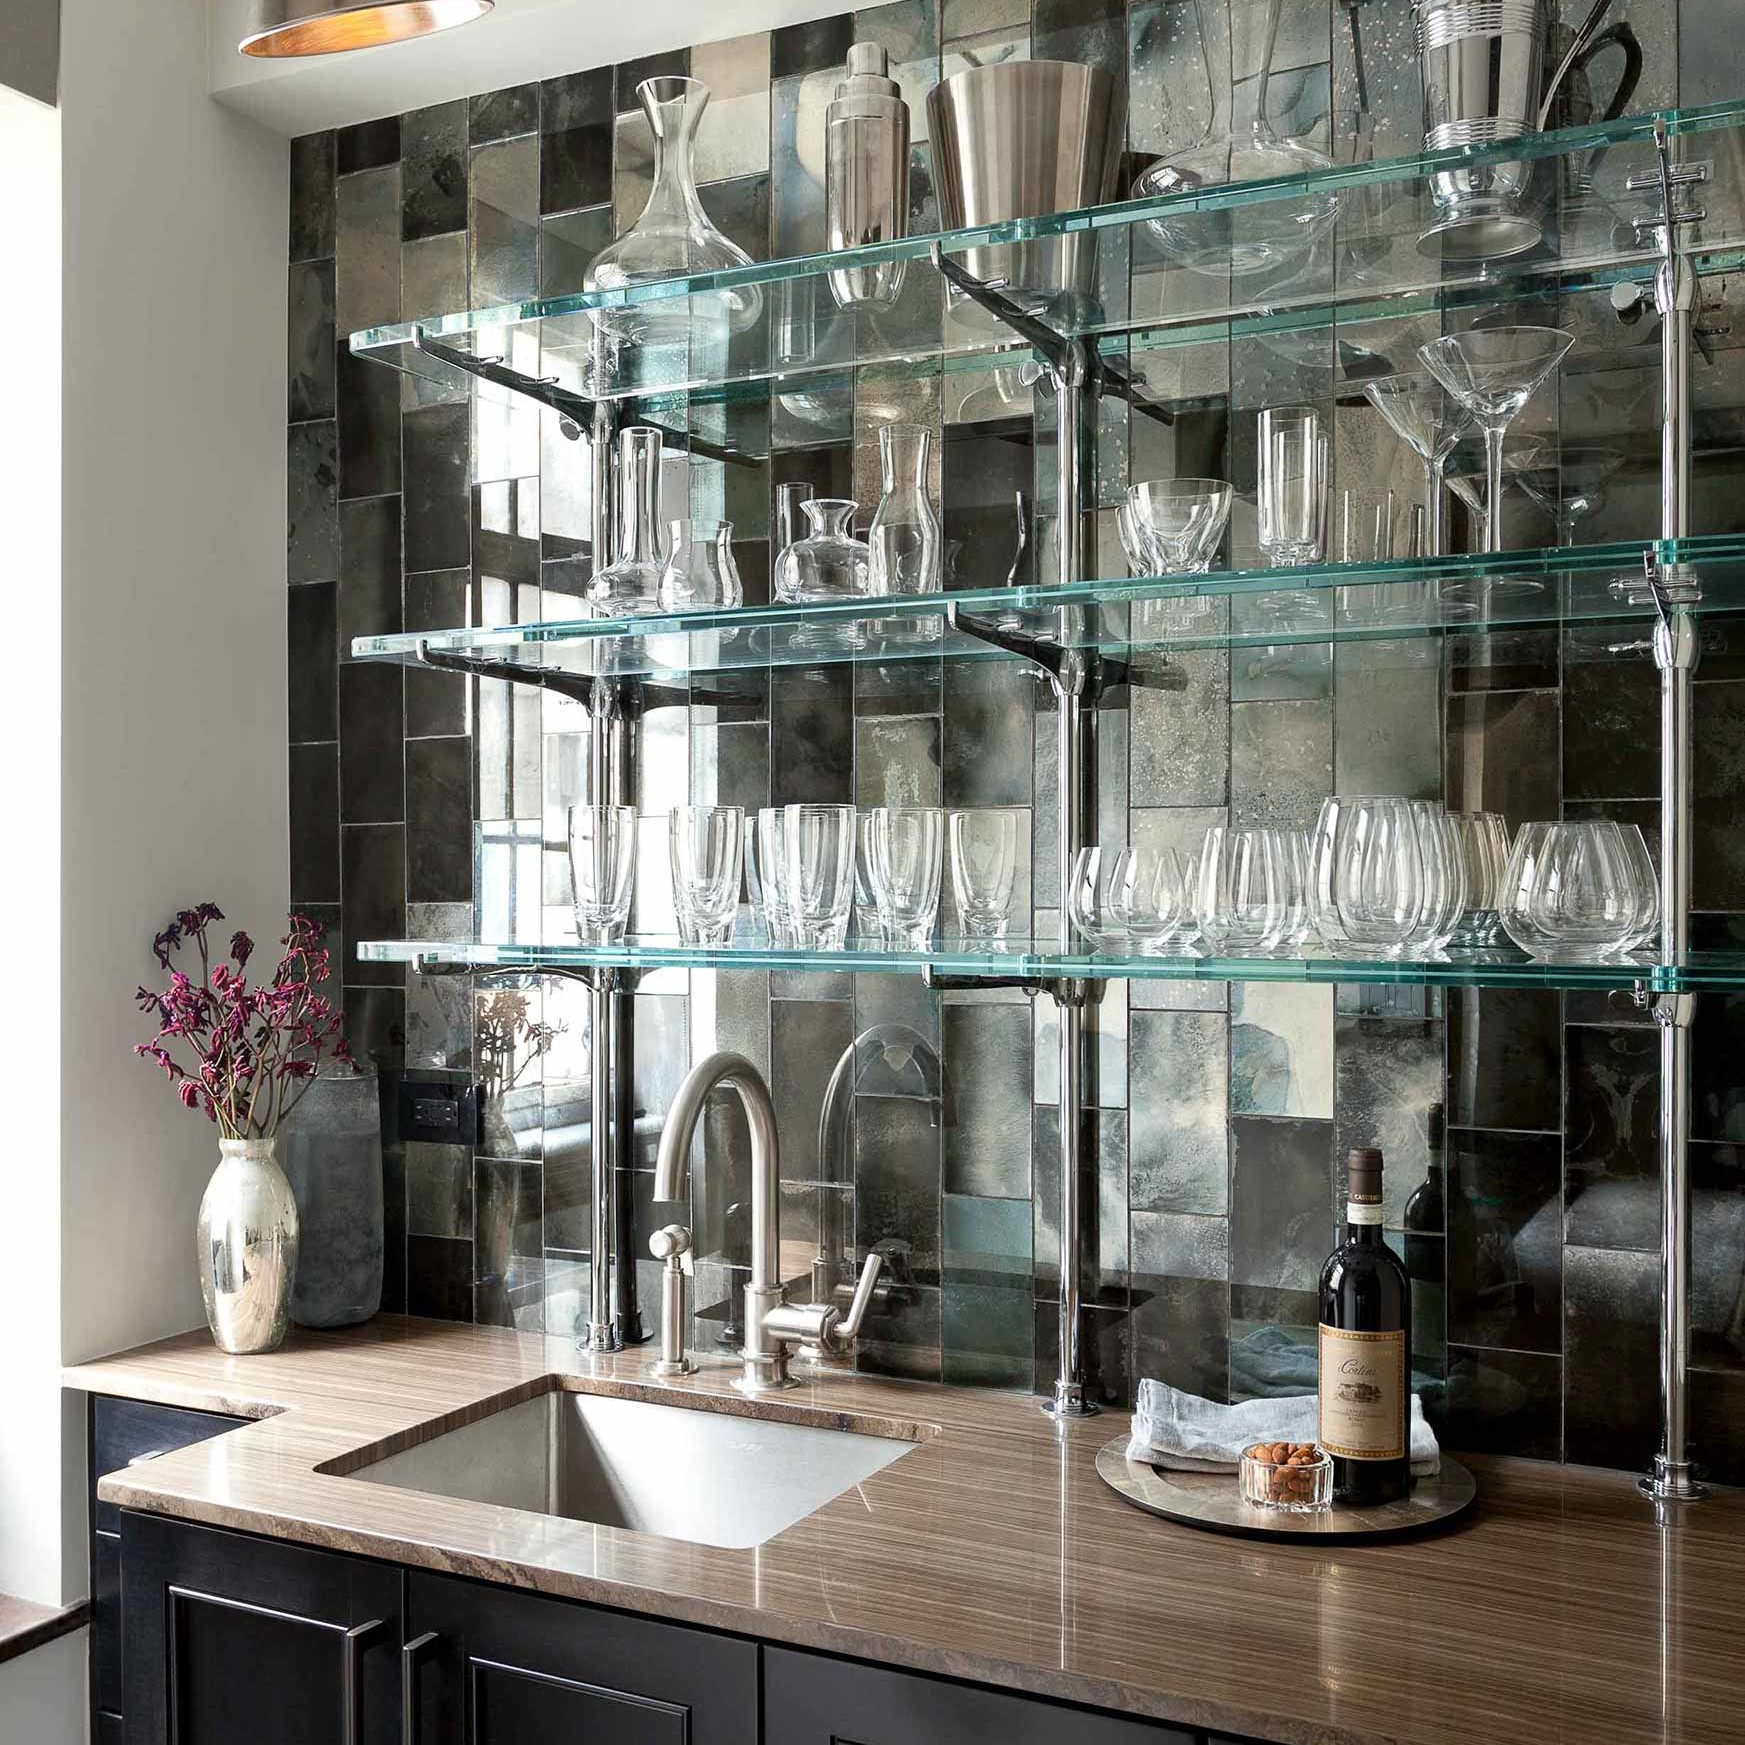 Kitchen turned into a full-service bar in a NYC apartment